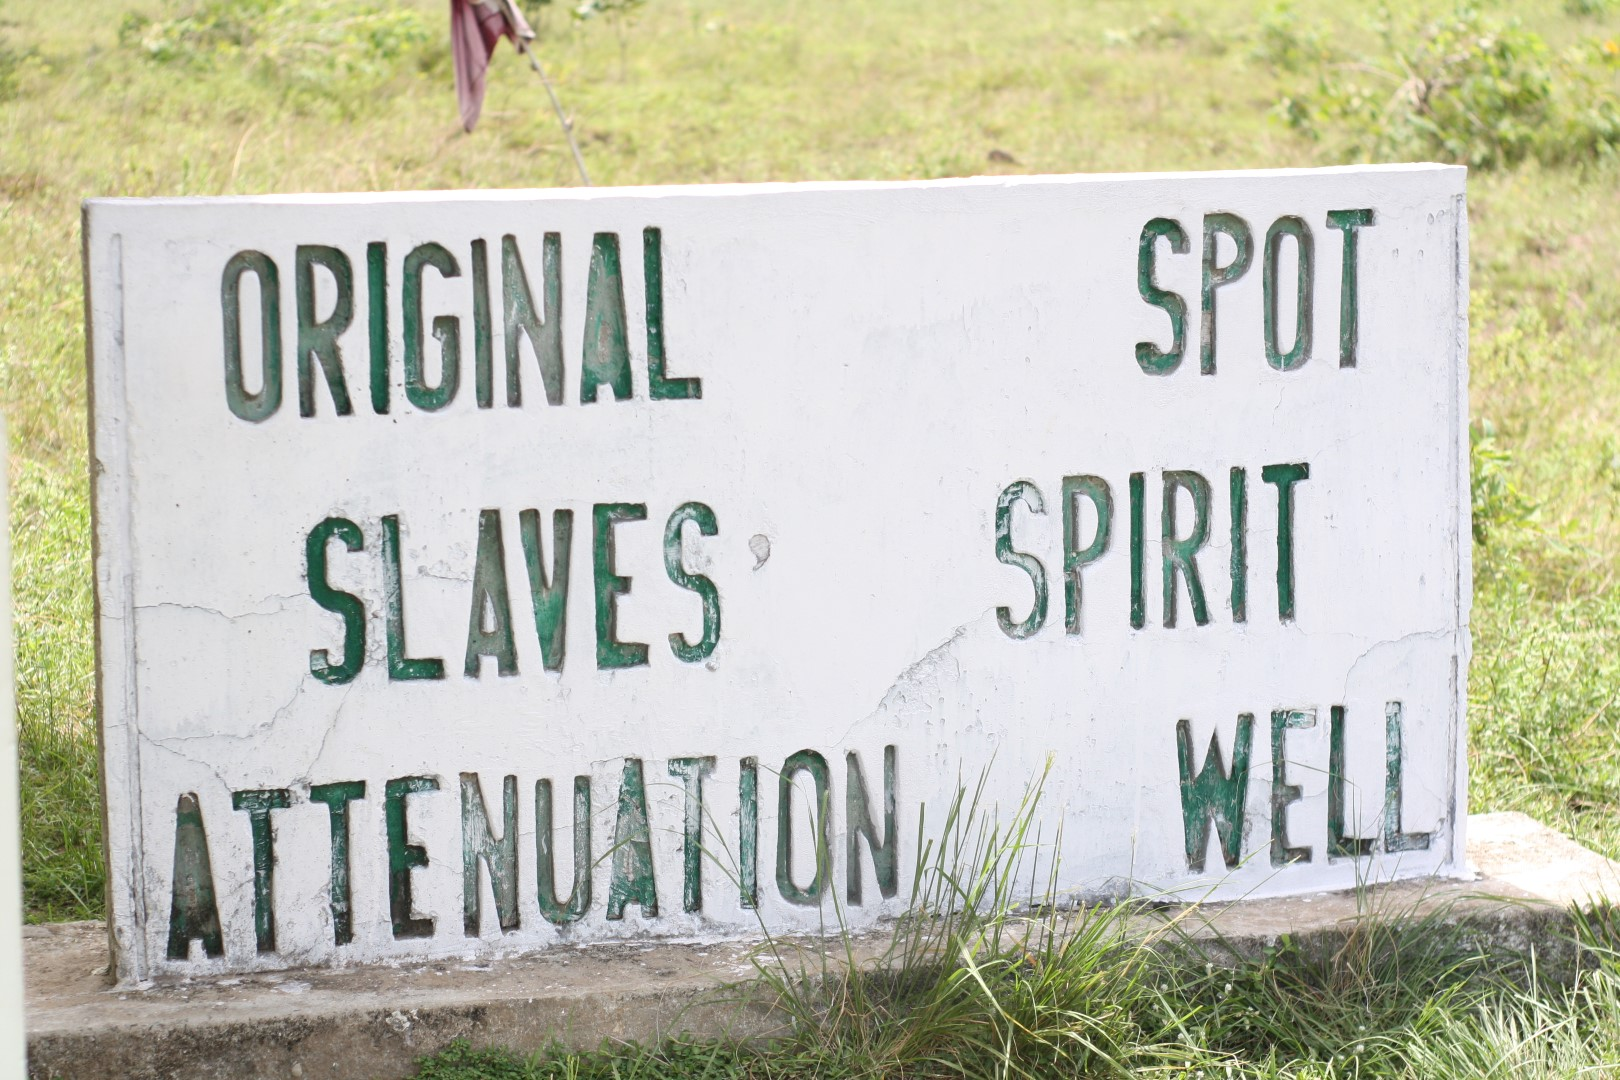 sign showing the original spot of the slaves spirit attenuation well in badagry, Lagos